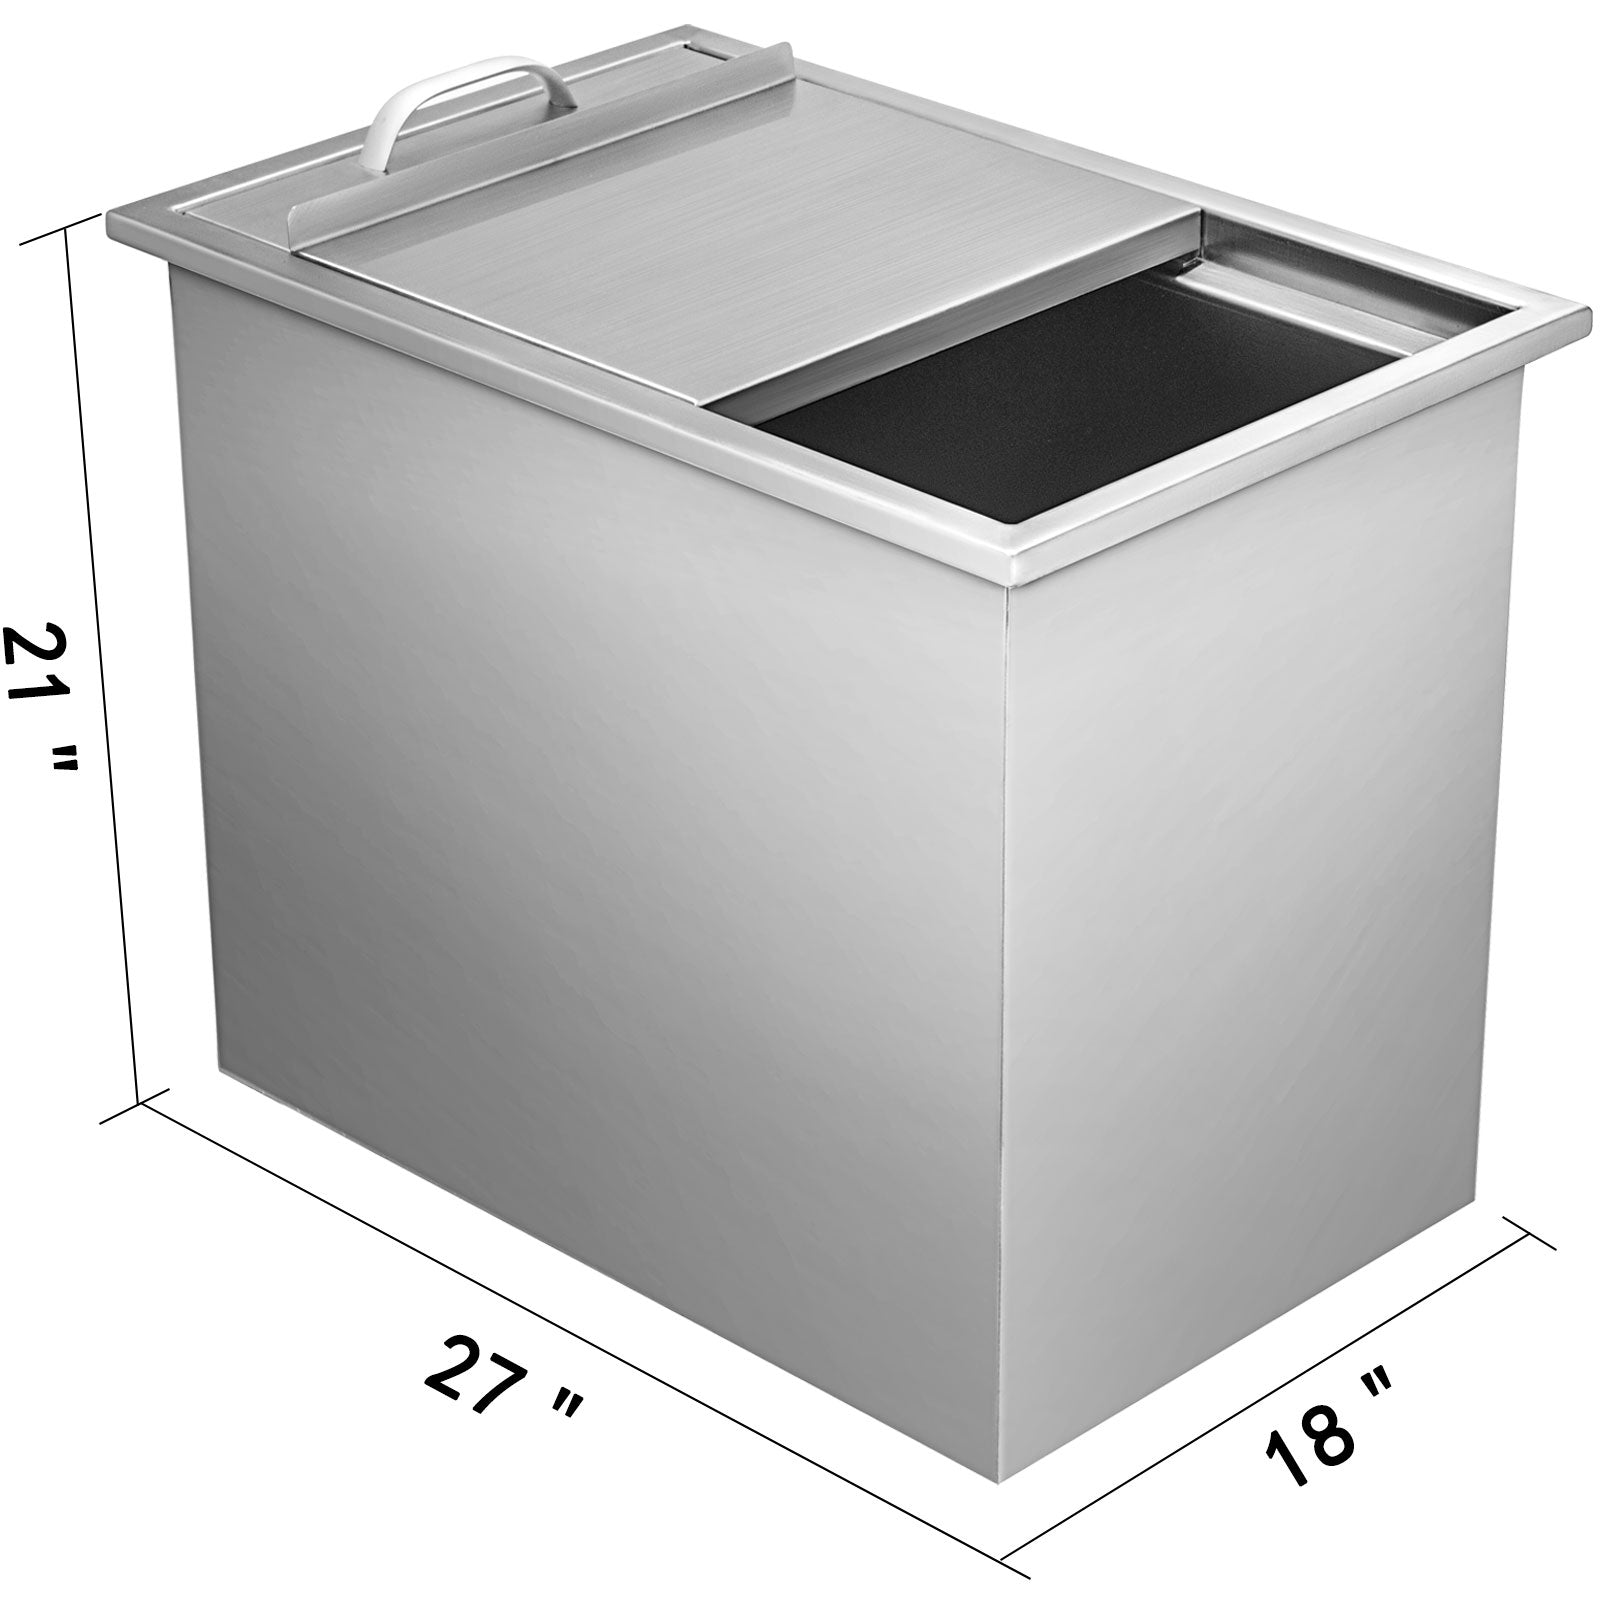 "27""x18"" Outdoor Kitchen Drop-in Ice Chest Bin Cooler 304 Beer Ice Buckets Box"